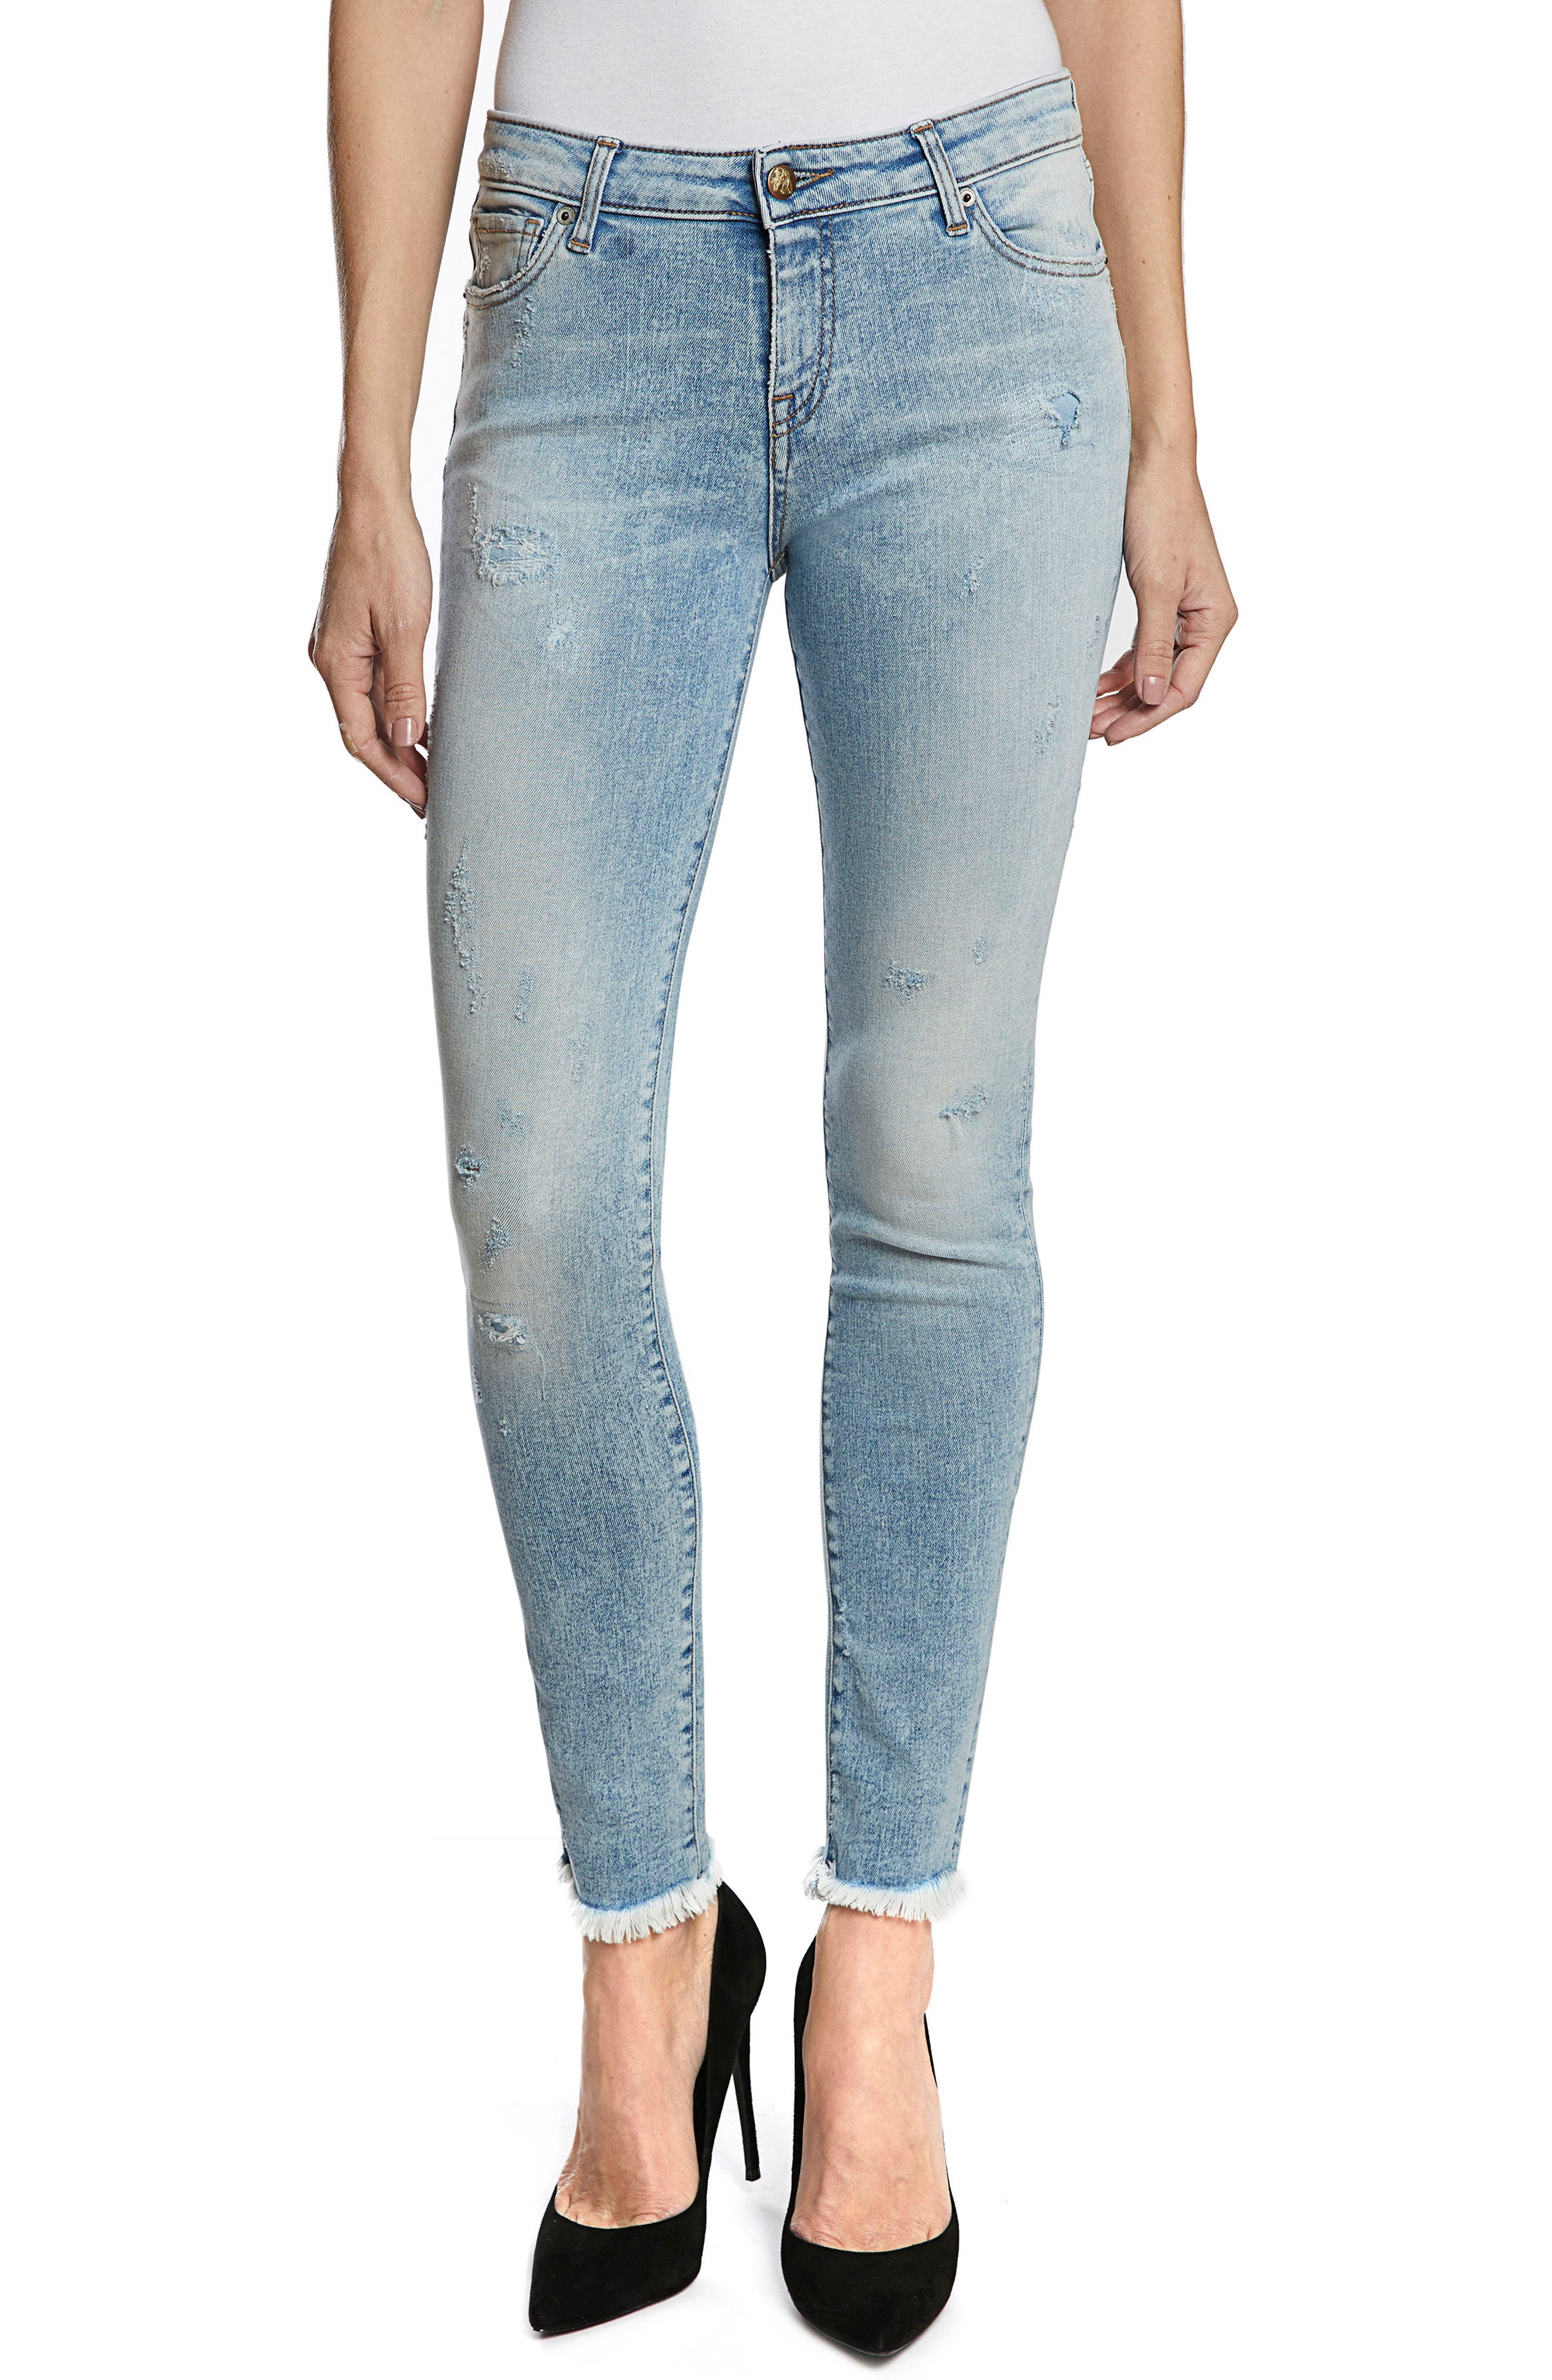 Camaro Ankle Skinny Jeans,                             Main thumbnail 1, color,                             Indigo